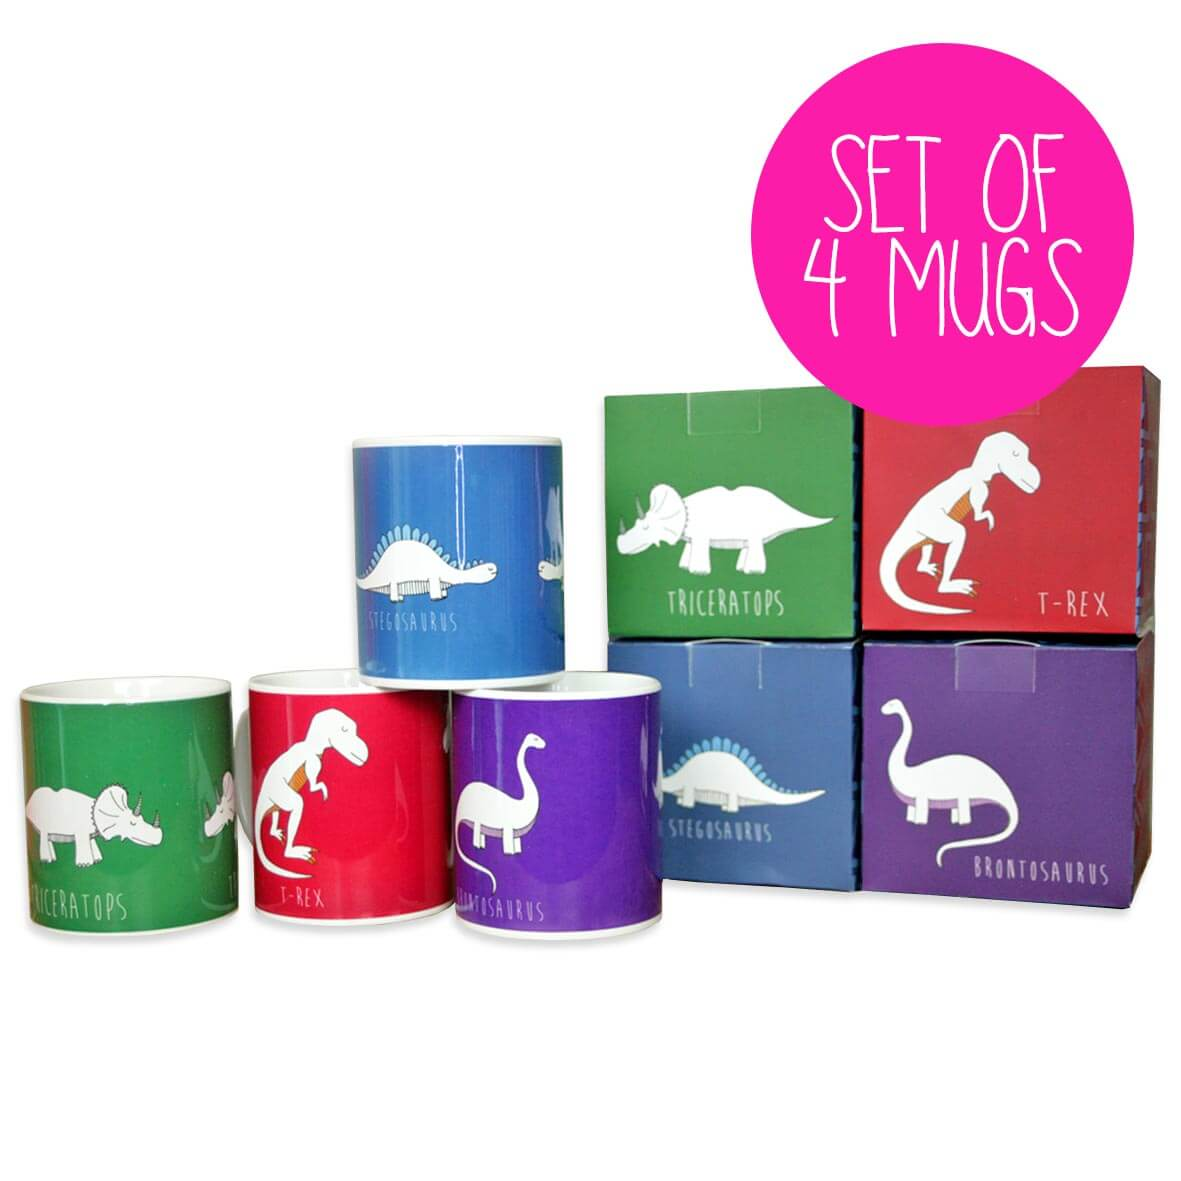 Set of four dinosaur mugs with boxes in red, green, purple and blue